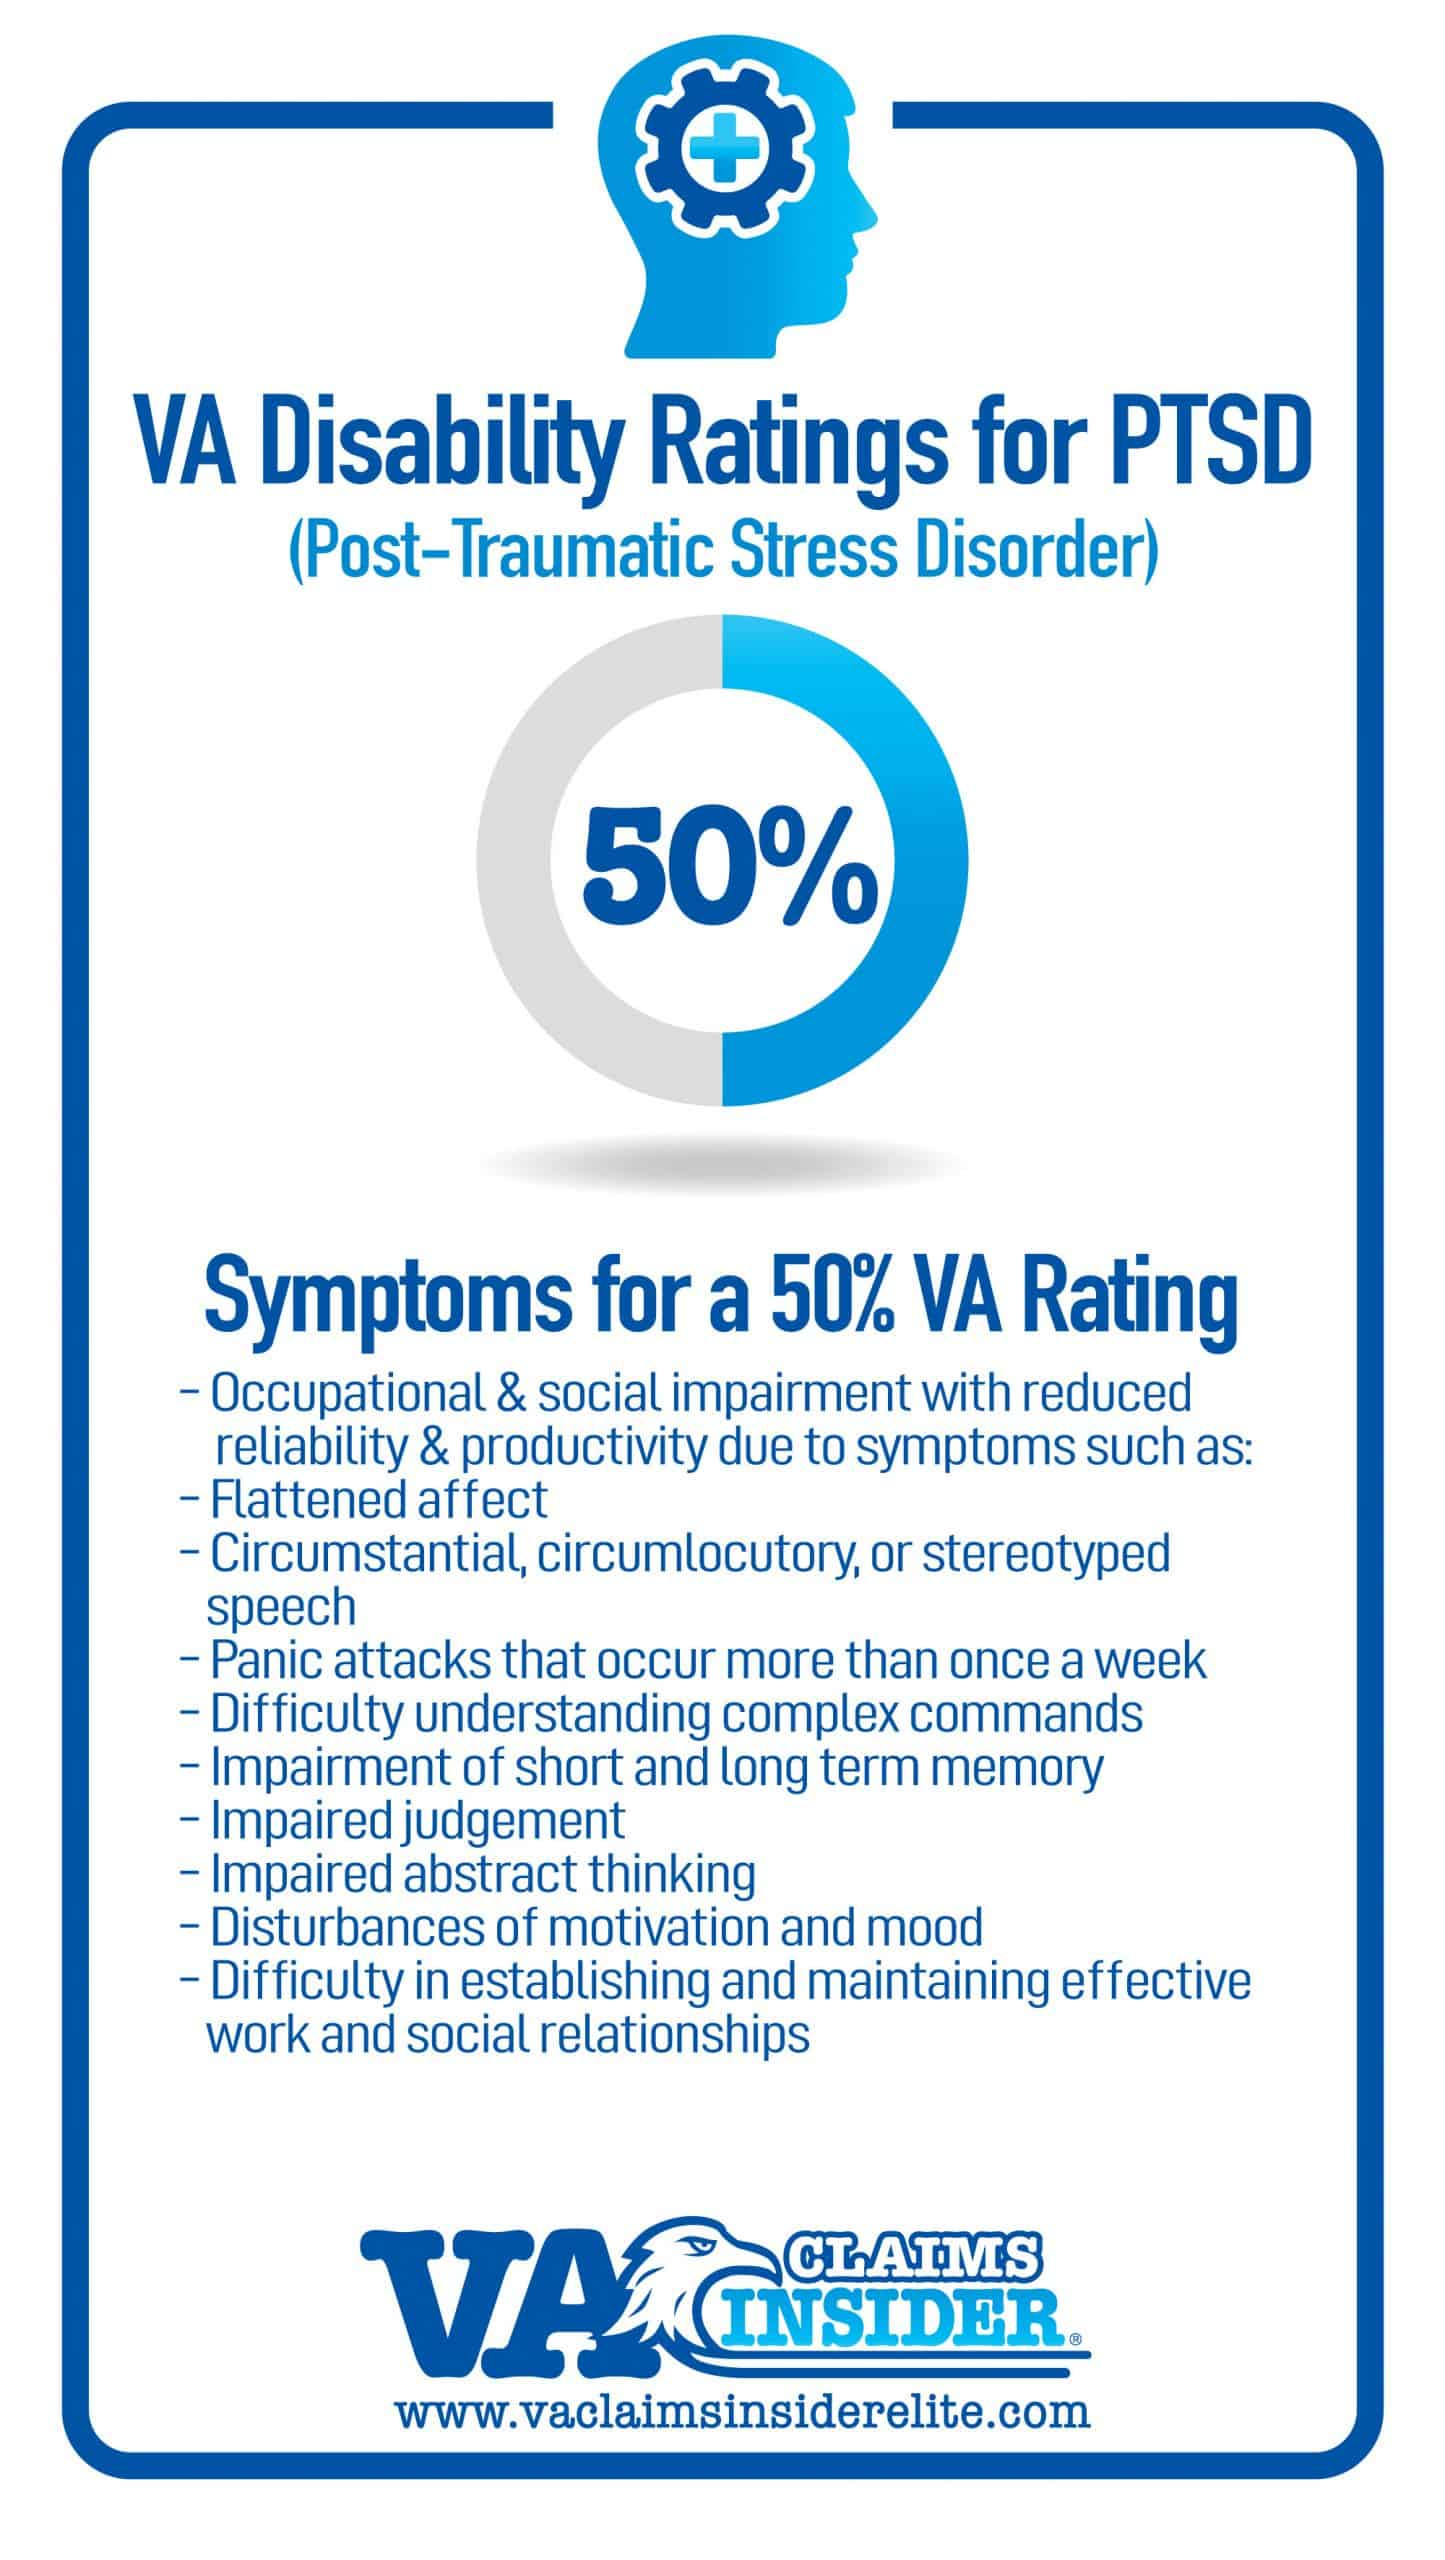 Symptoms of 50 Percent VA Rating for PTSD